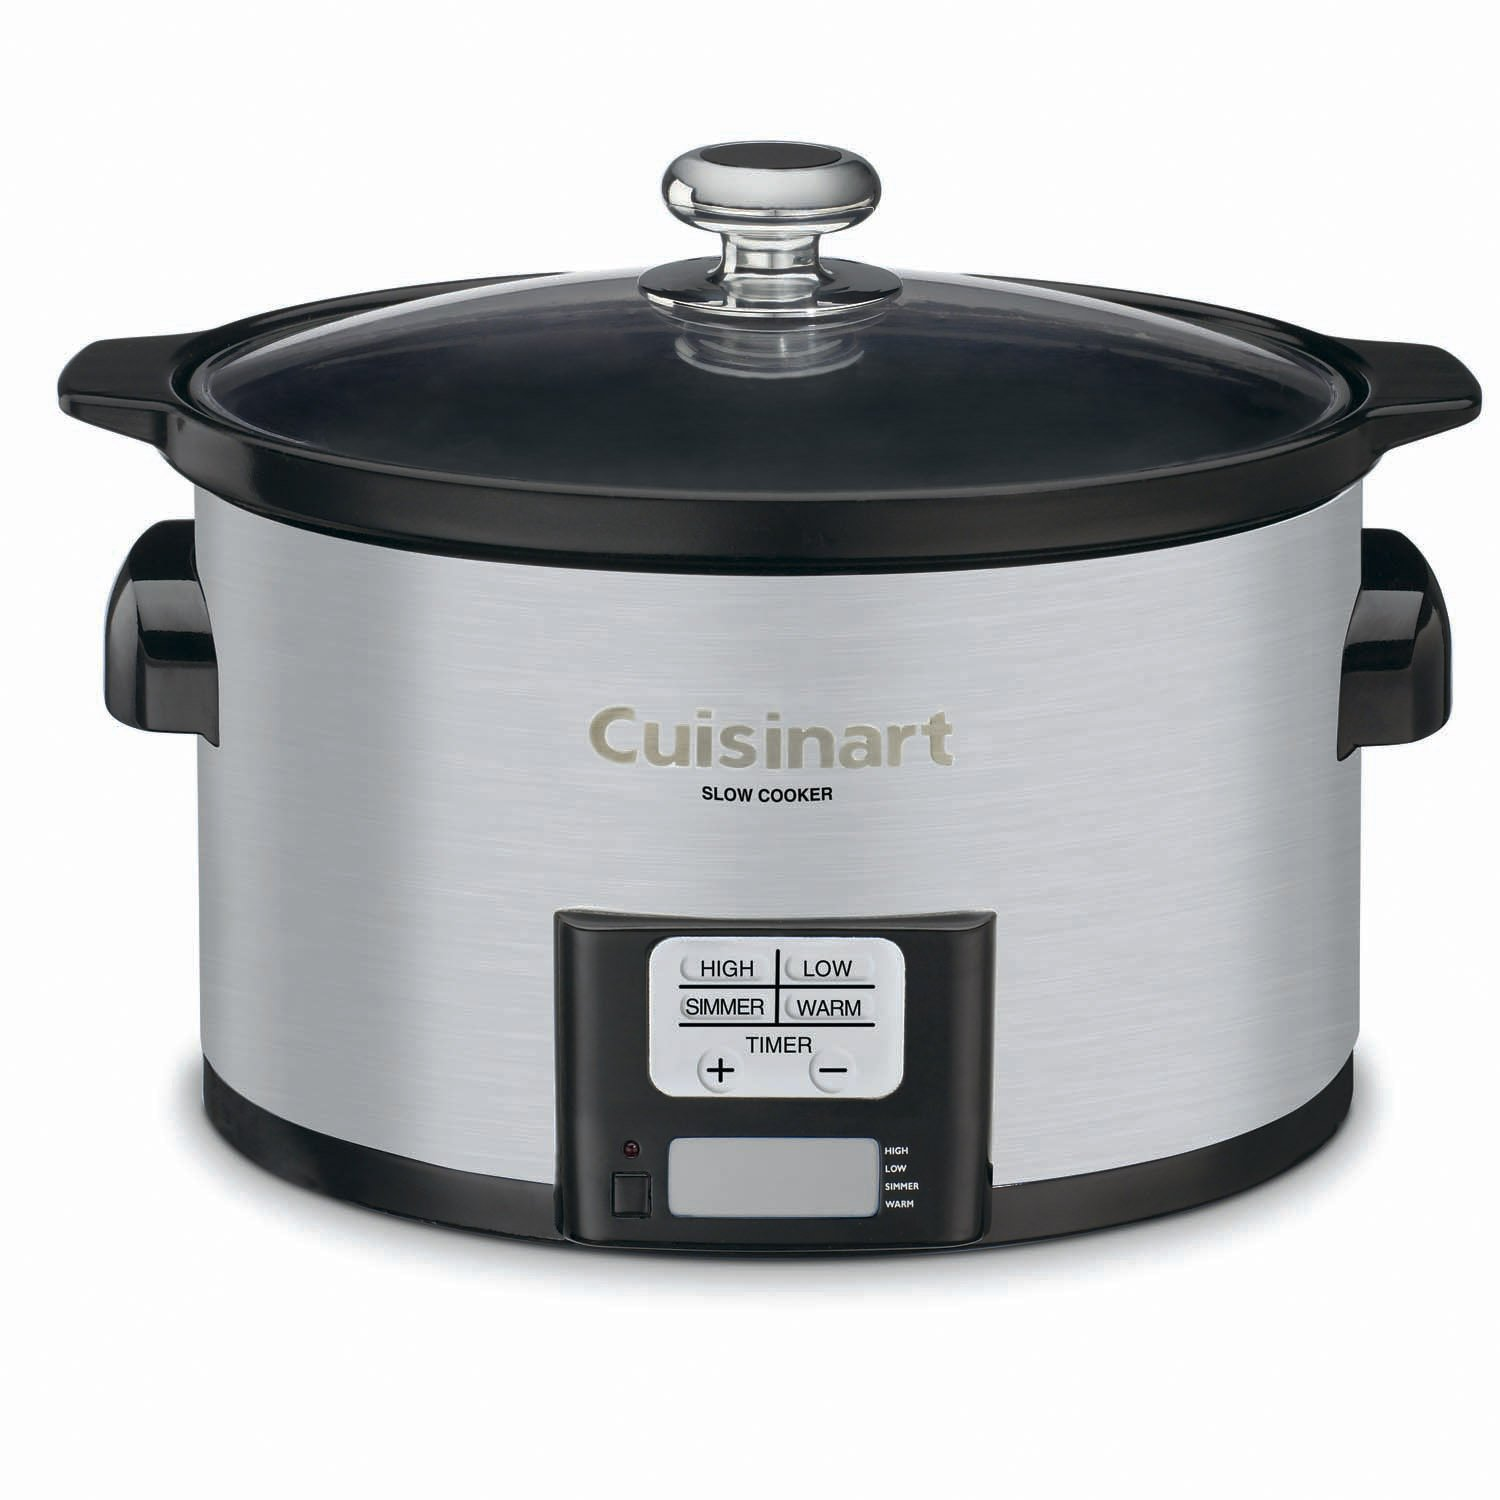 Cuisinart PSC-350 3-1/2-Quart Programmable Slow Cooker | amazon.com